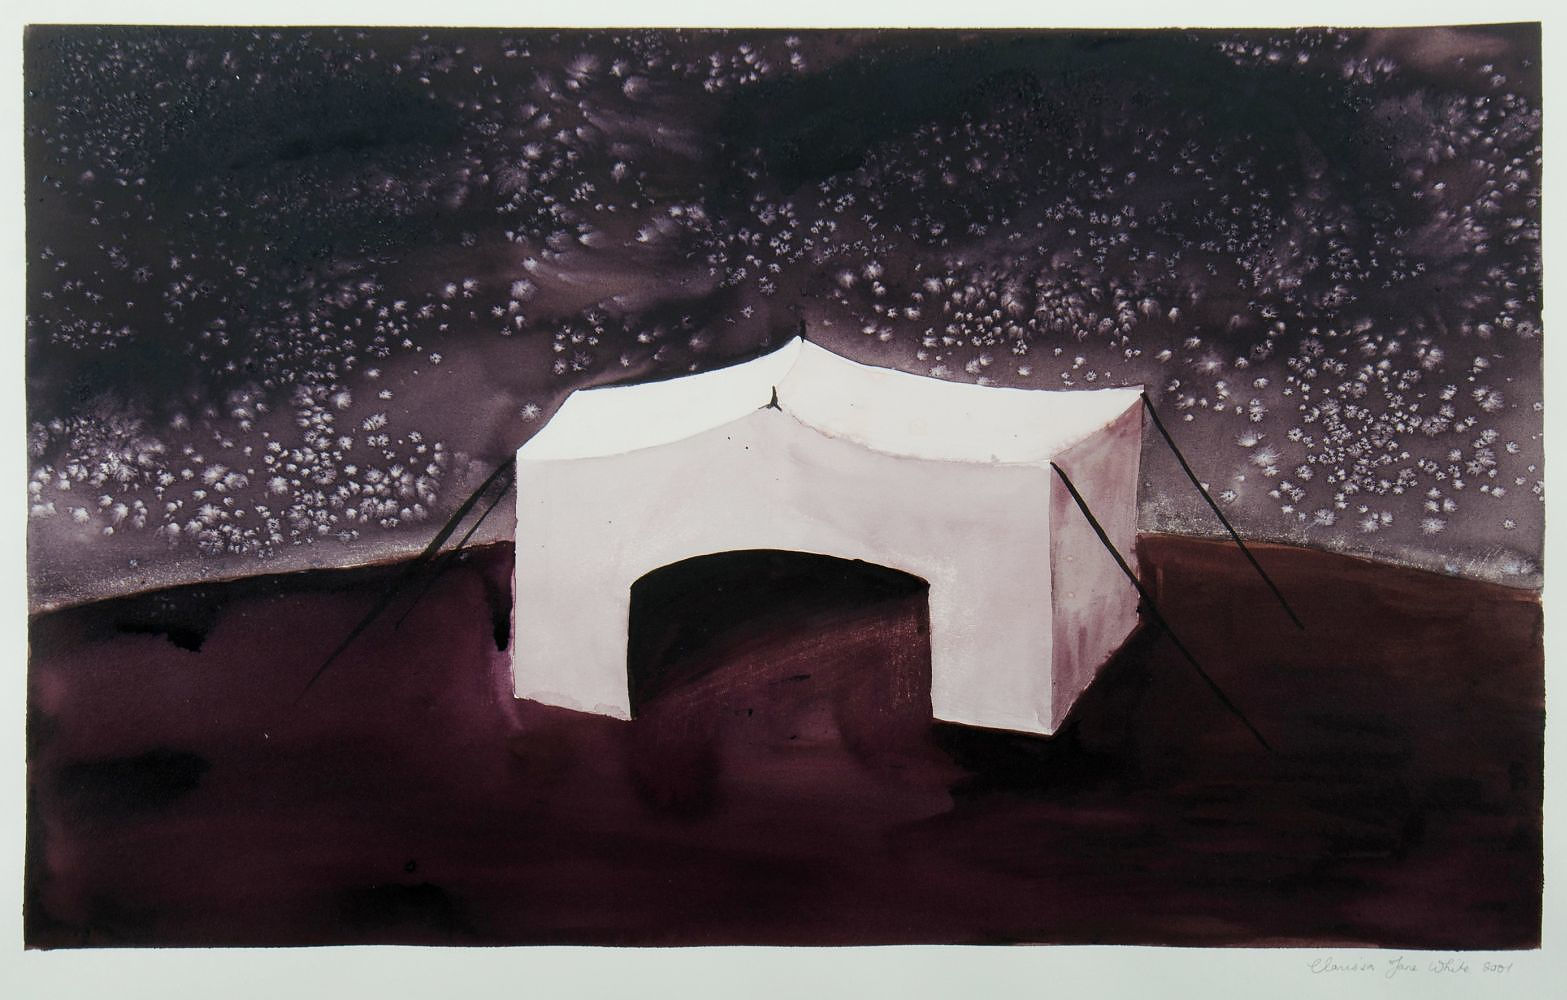 'WHITE, Clarissa Jane, Tent at Night, 2001 Watercolour & Gouache'